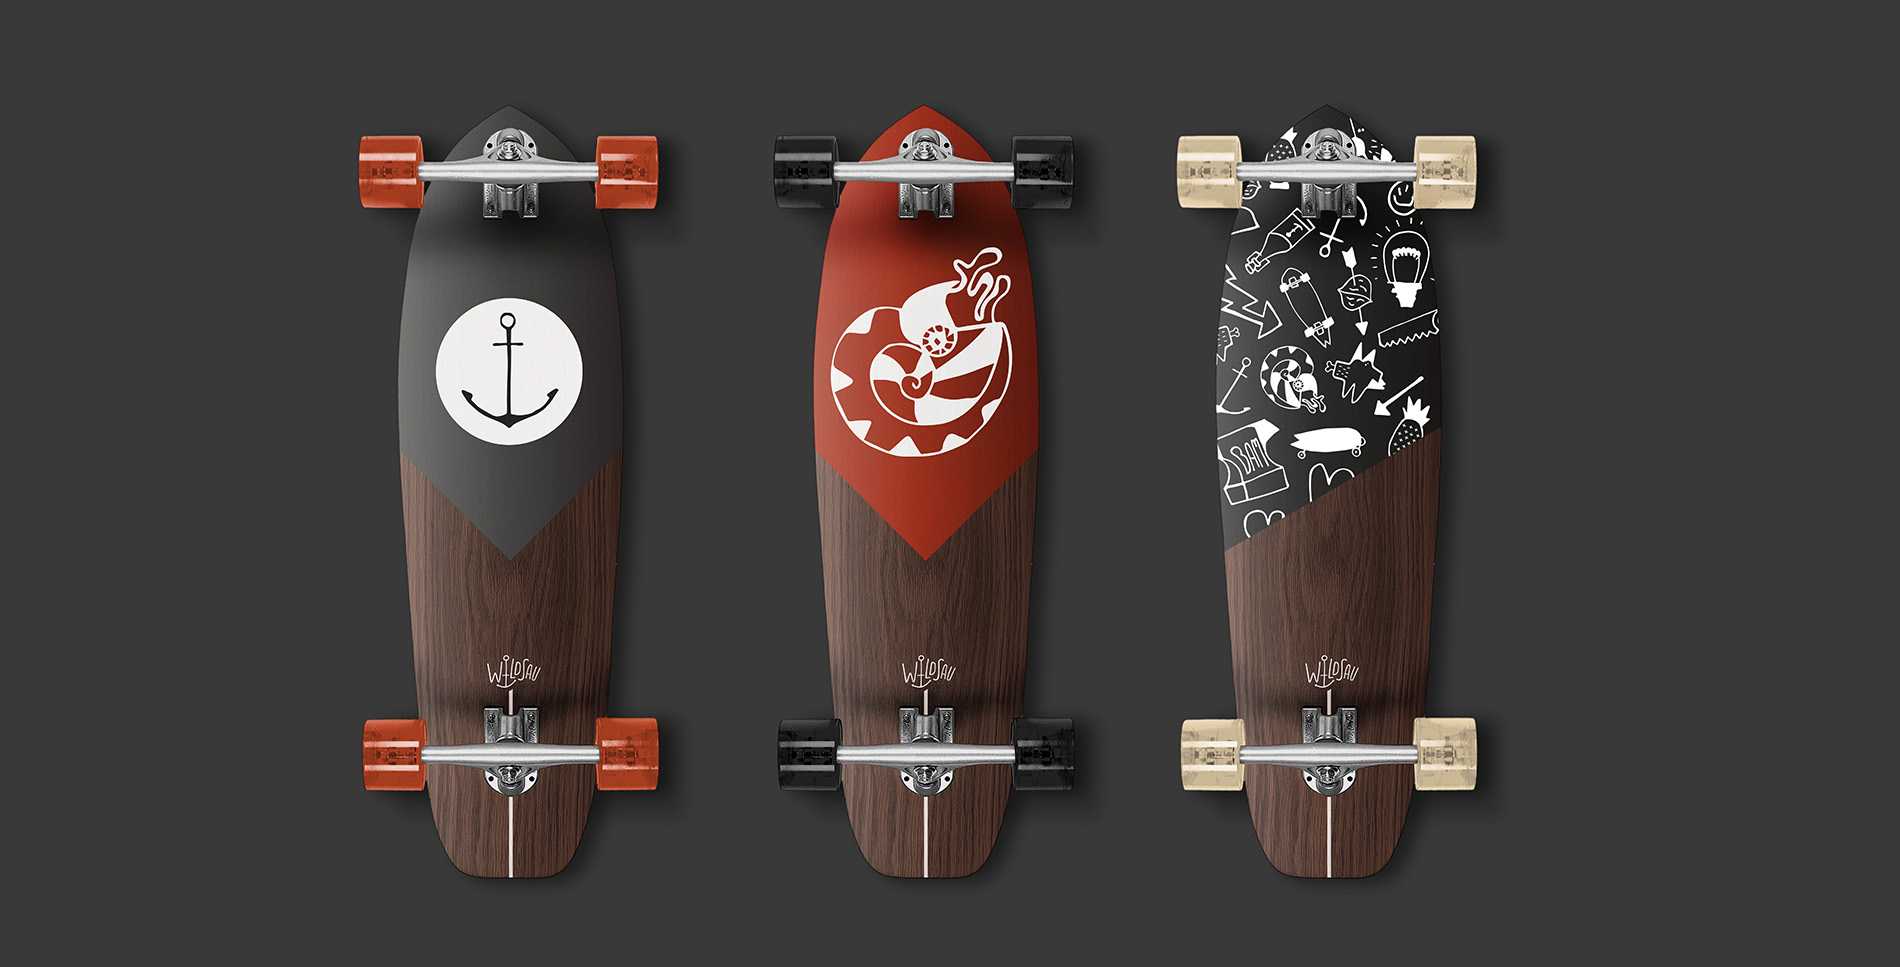 Christian_Friedrich_Kommunikationsdesign_Hamburg_Mydesignrocks_CI_Wildsau_NussbierSkateboards_klein